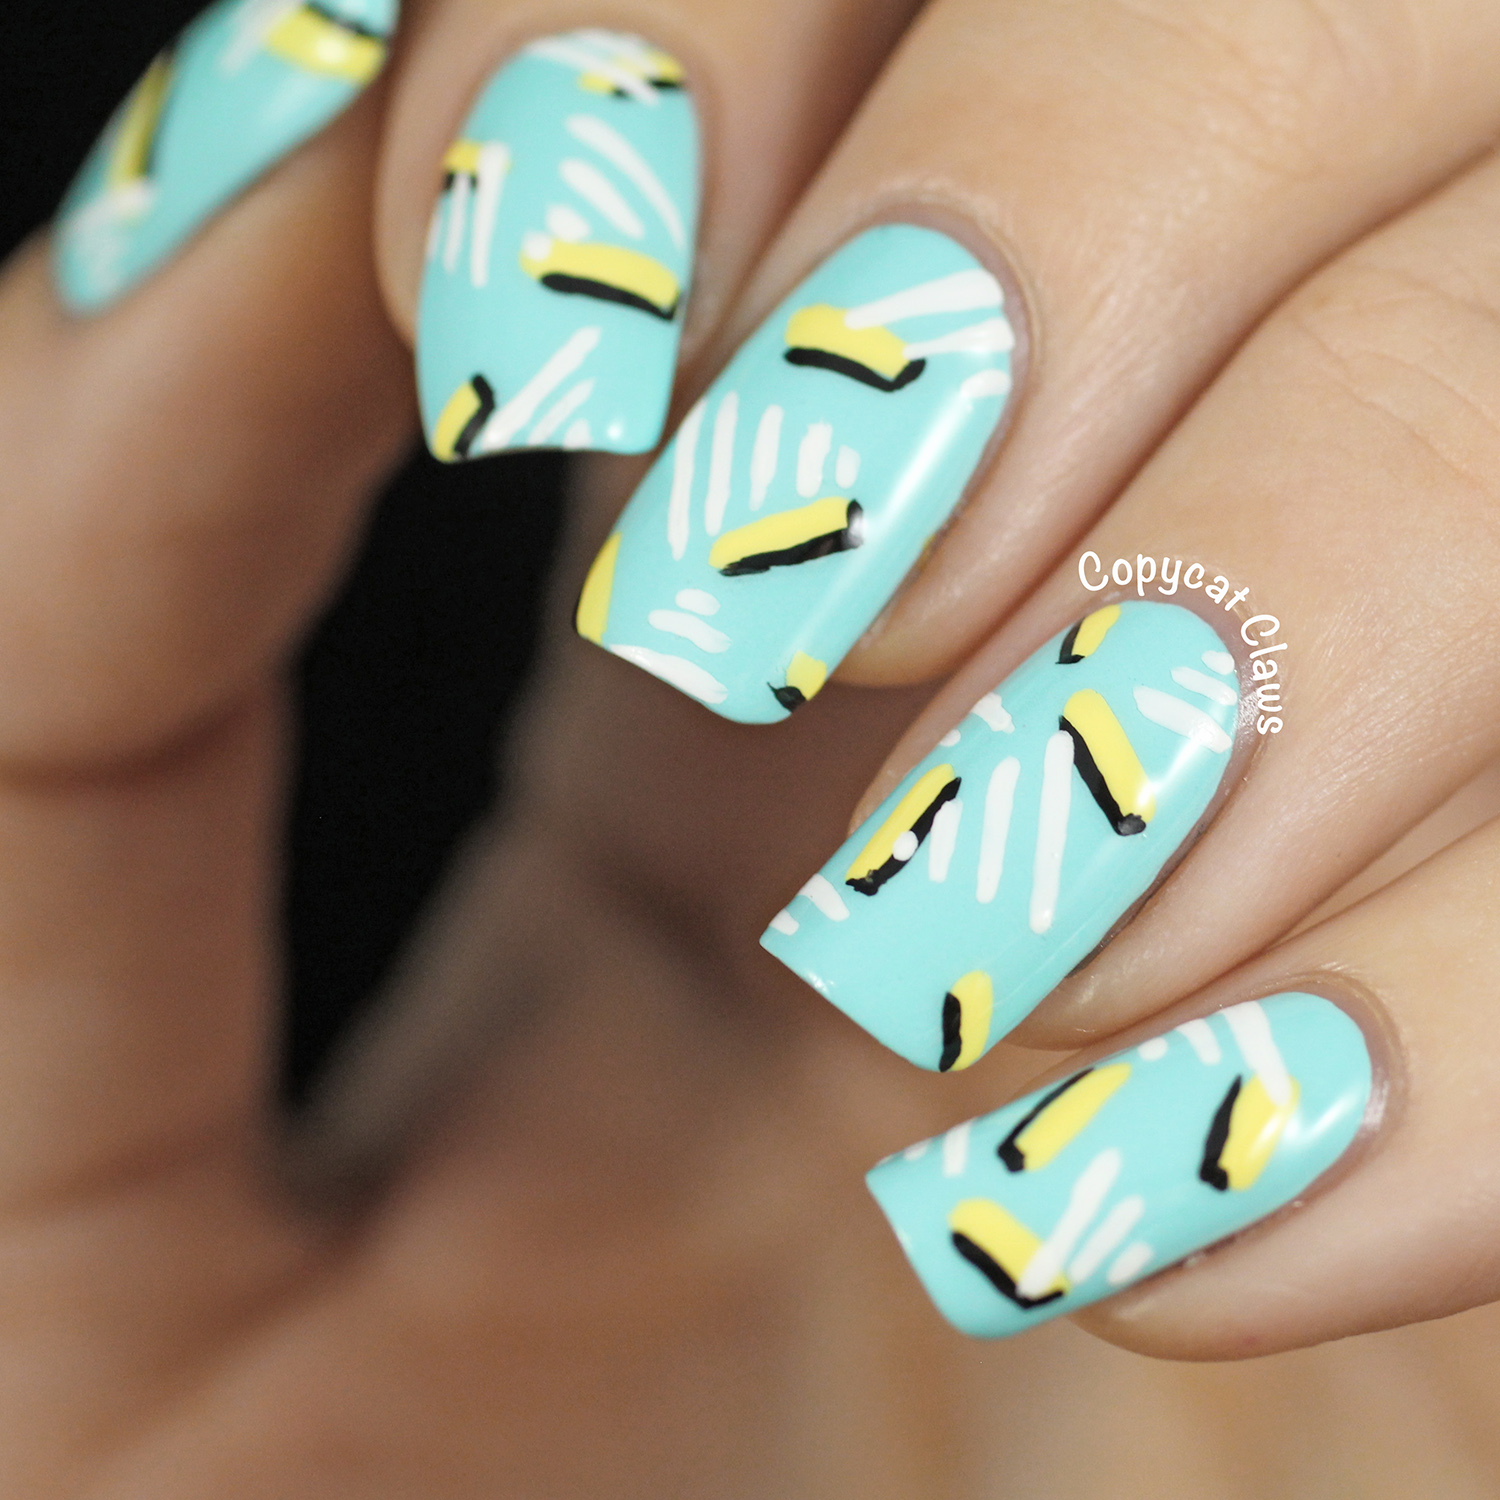 Copycat Claws Blue Color Block Nail Art: Copycat Claws: 80's Nail Art